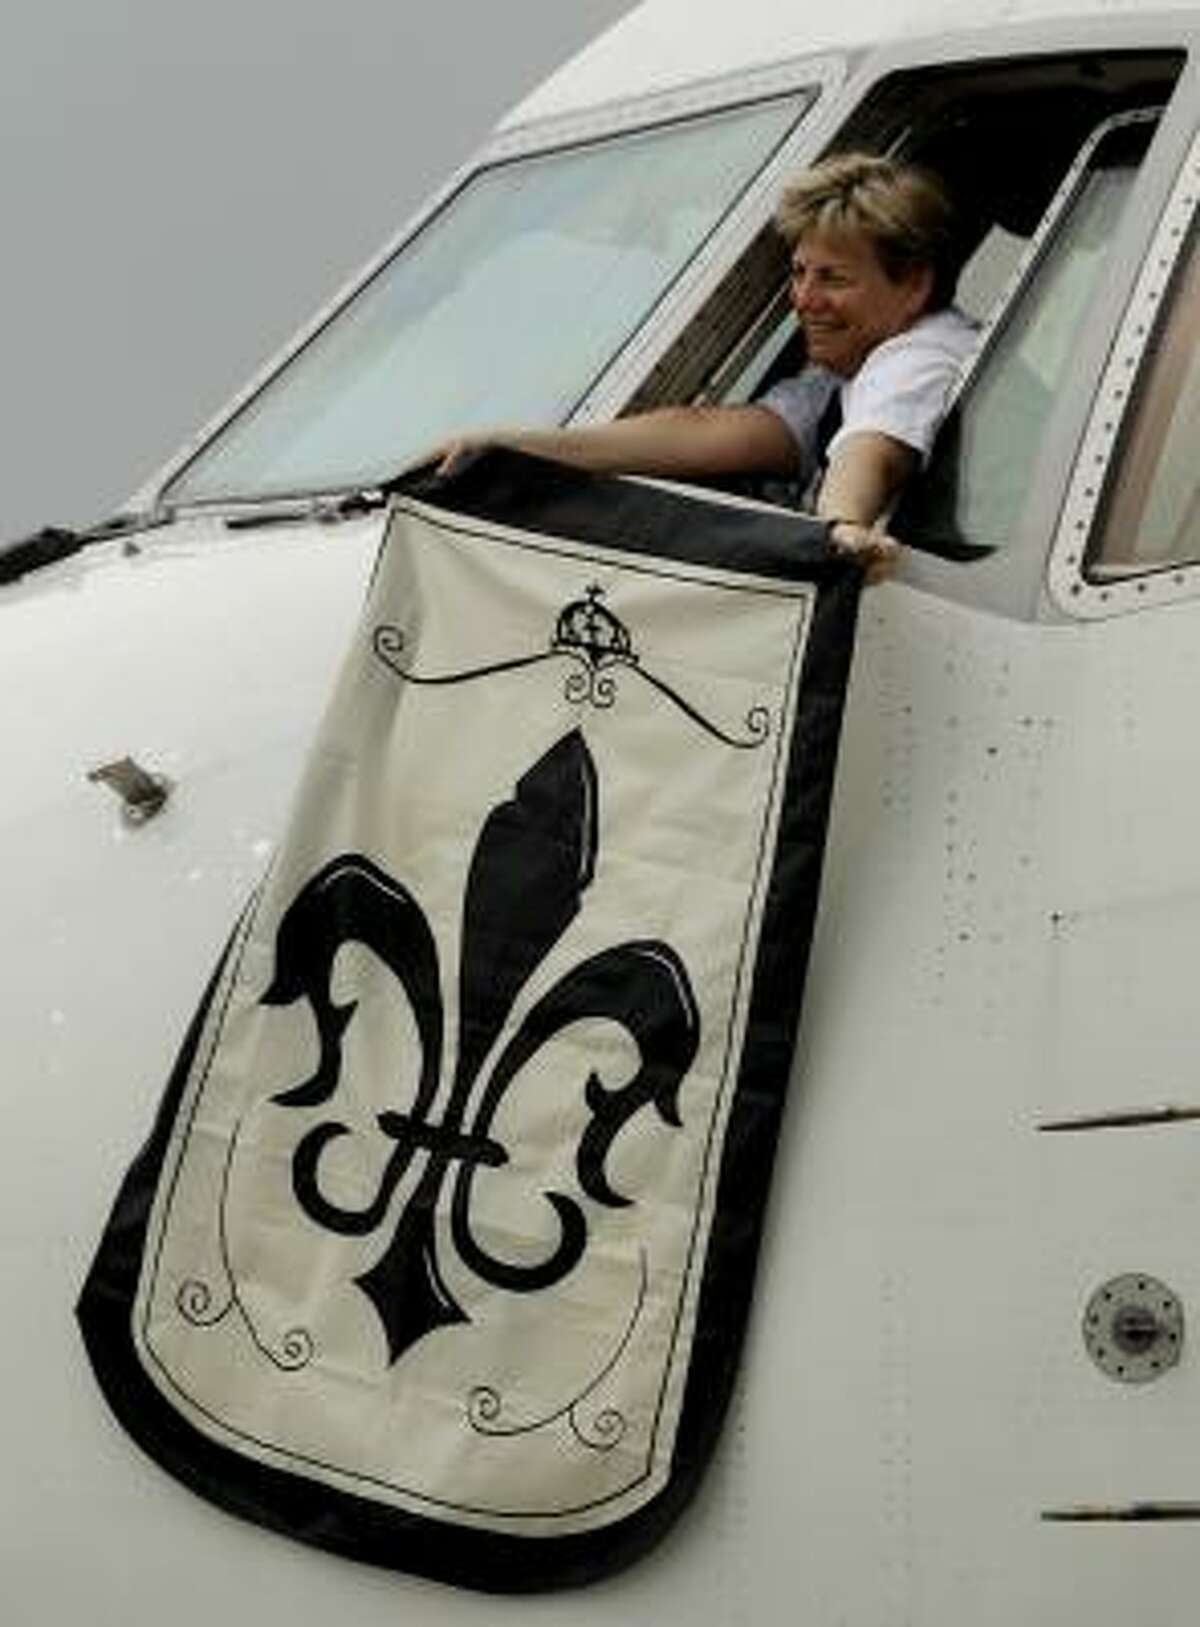 A New Orleans Saints flag is waved out the window of the plane as the team arrives in Miami.